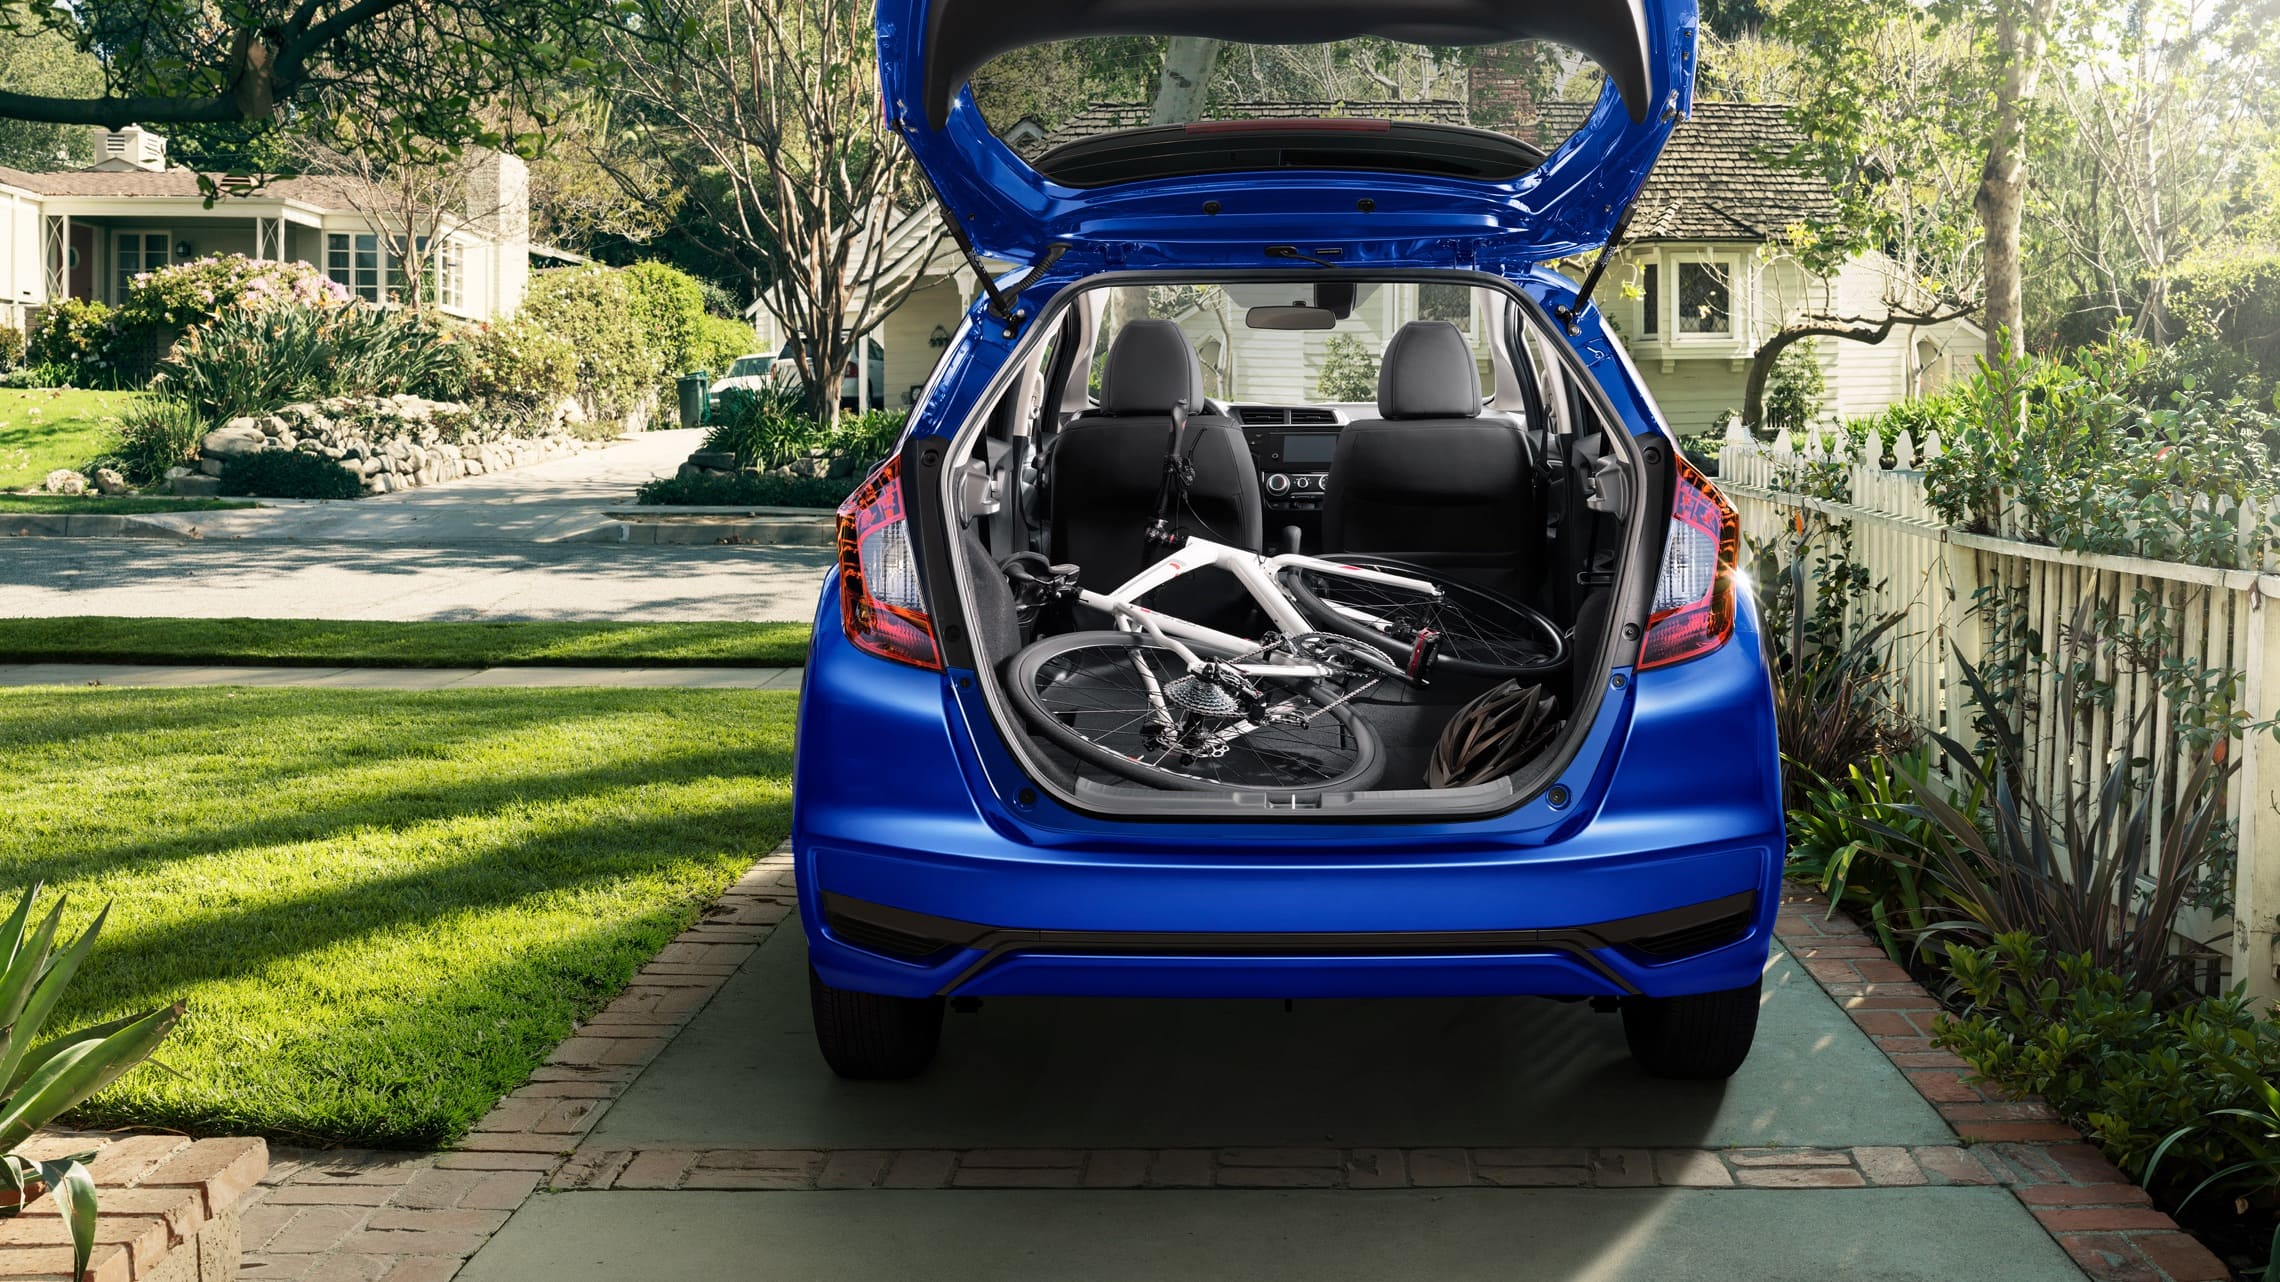 Exterior rear view of the 2020 Honda Fit EX-L in Aegean Blue Metallic with liftgate open and bicycle in cargo area.